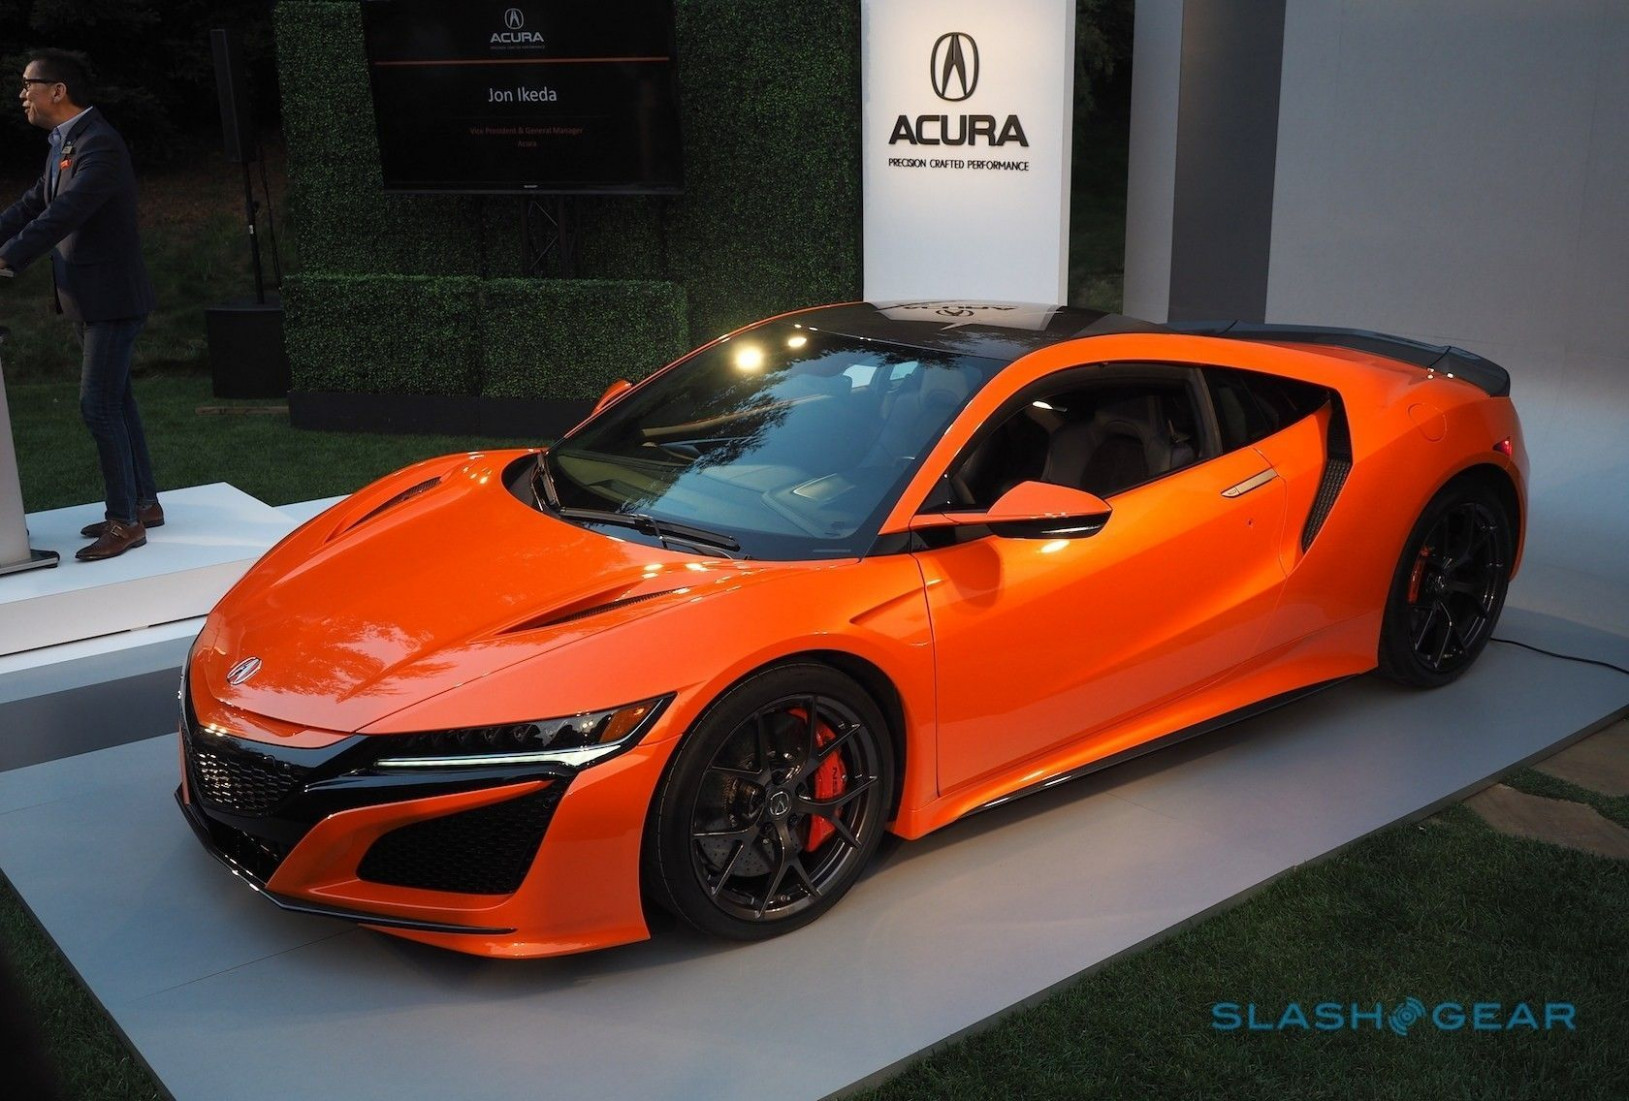 12+ honda nsx 12 price philippines Release Date, Price and Review